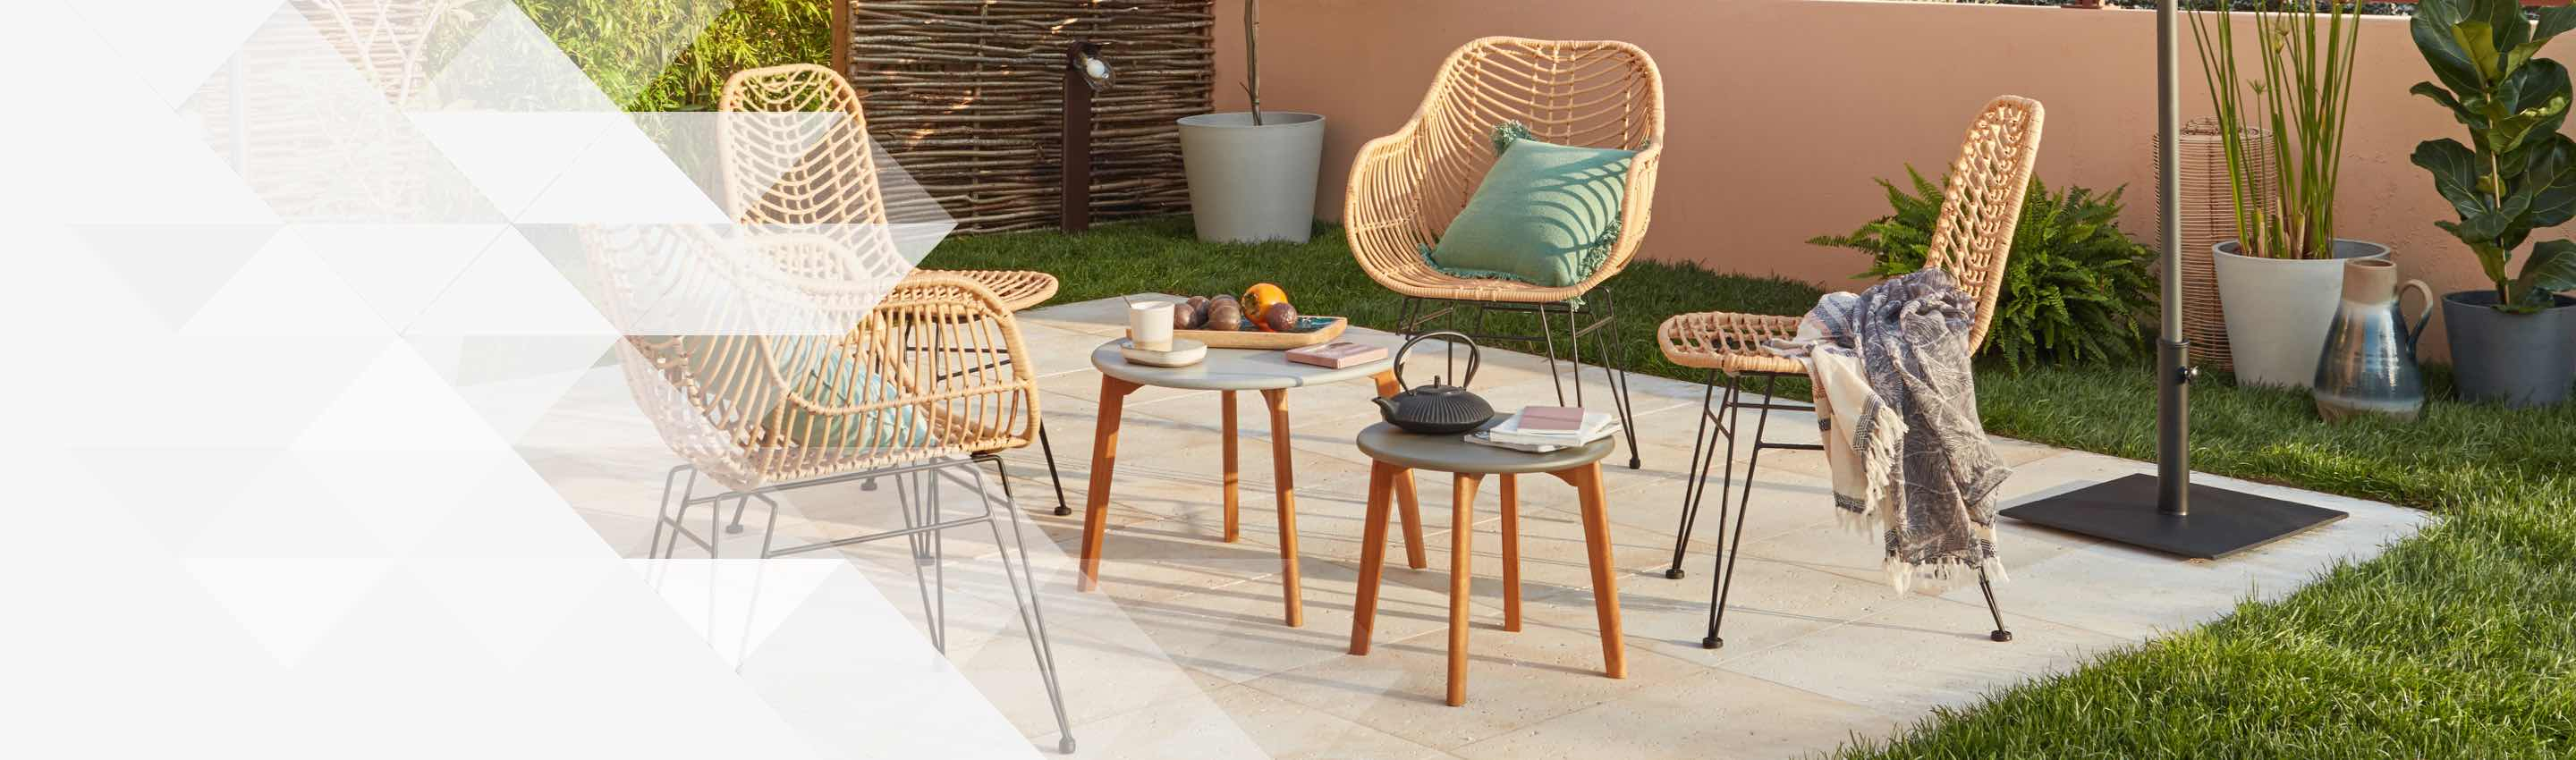 Chaises De Table Salon De Jardin Table Et Chaise Mobilier De Jardin Leroy Merlin